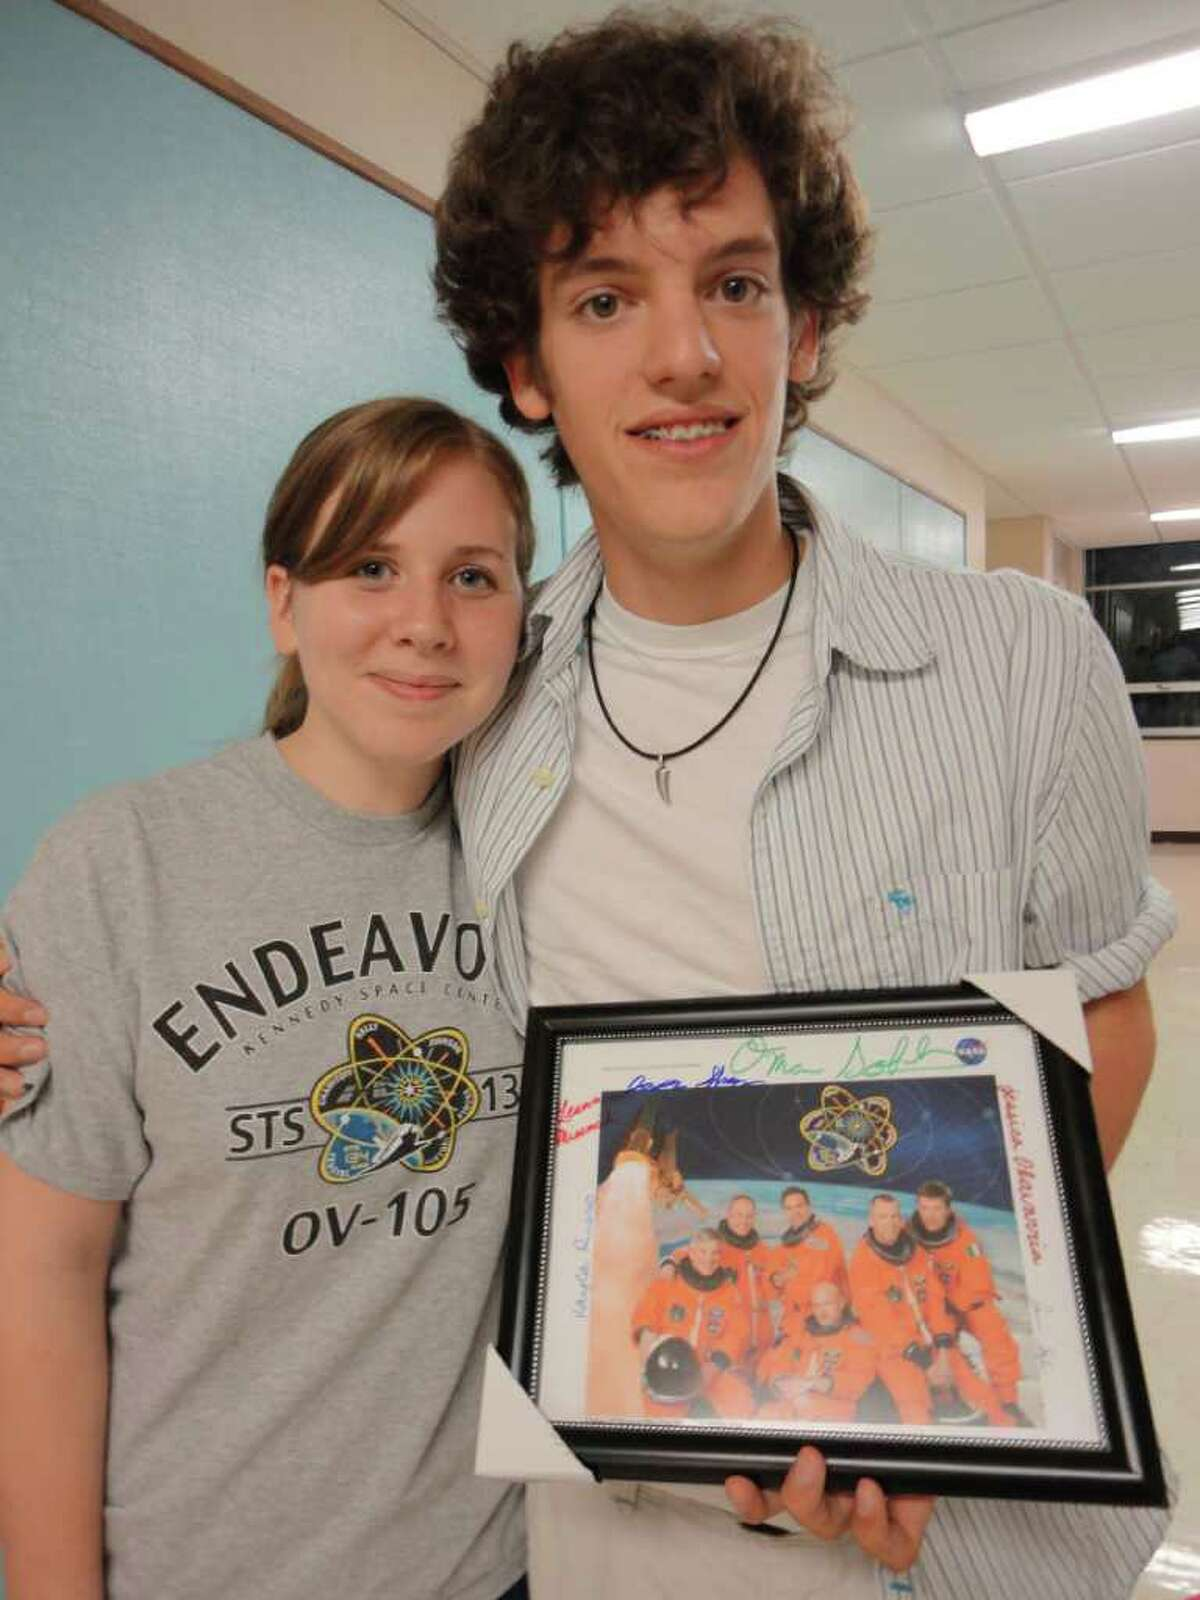 Kayla Russo and Jason Shnipes, were two of the four students who presented the results of their space shuttle experiment to the Board of Education Wednesday. Shnipes holds a photograph of the Endeavour astronauts, which the students, six in all, autographed and presented to board members, each of whom got their own photo.